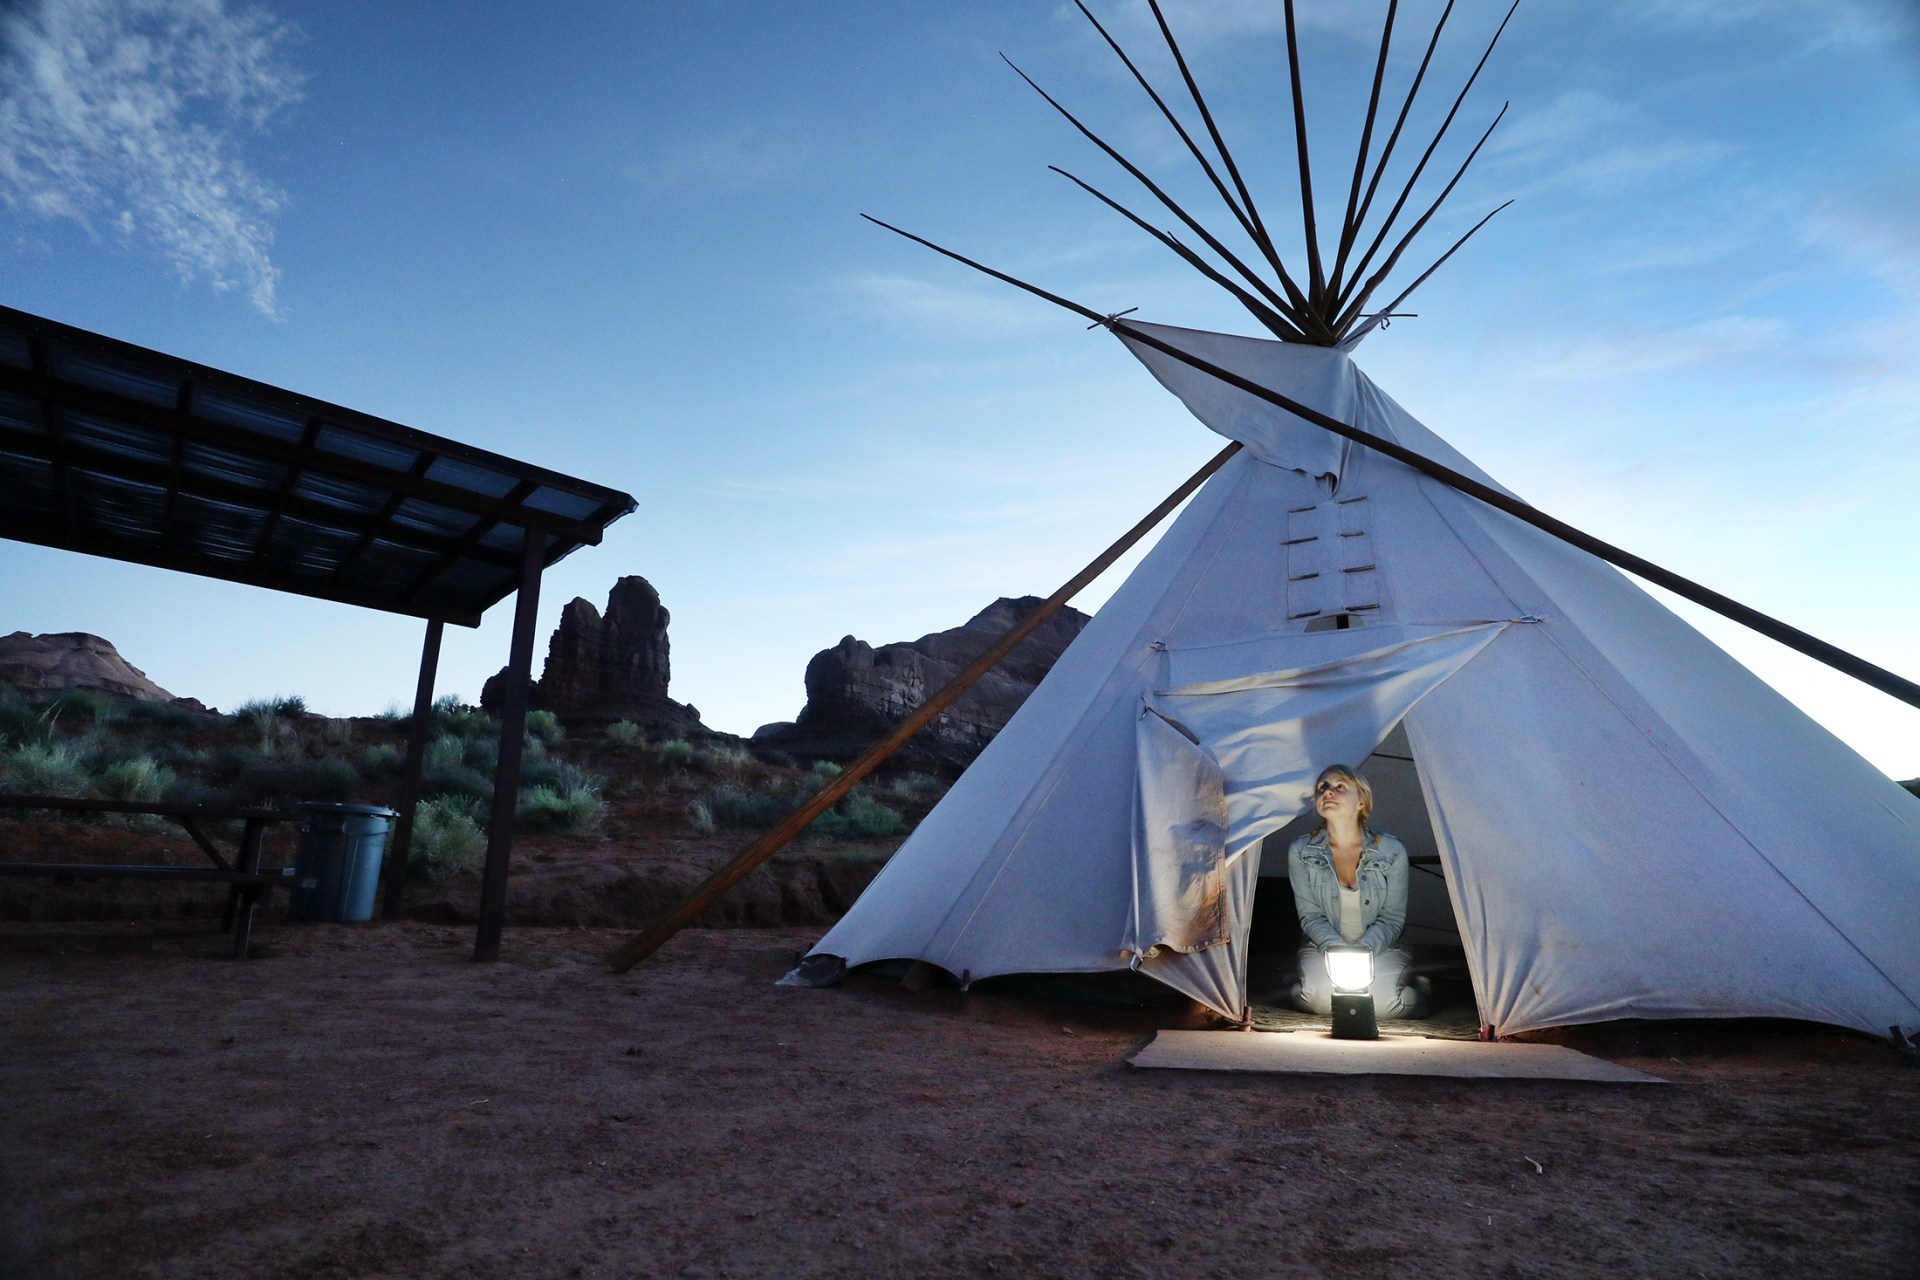 Desert glamping experience in Monument Valley